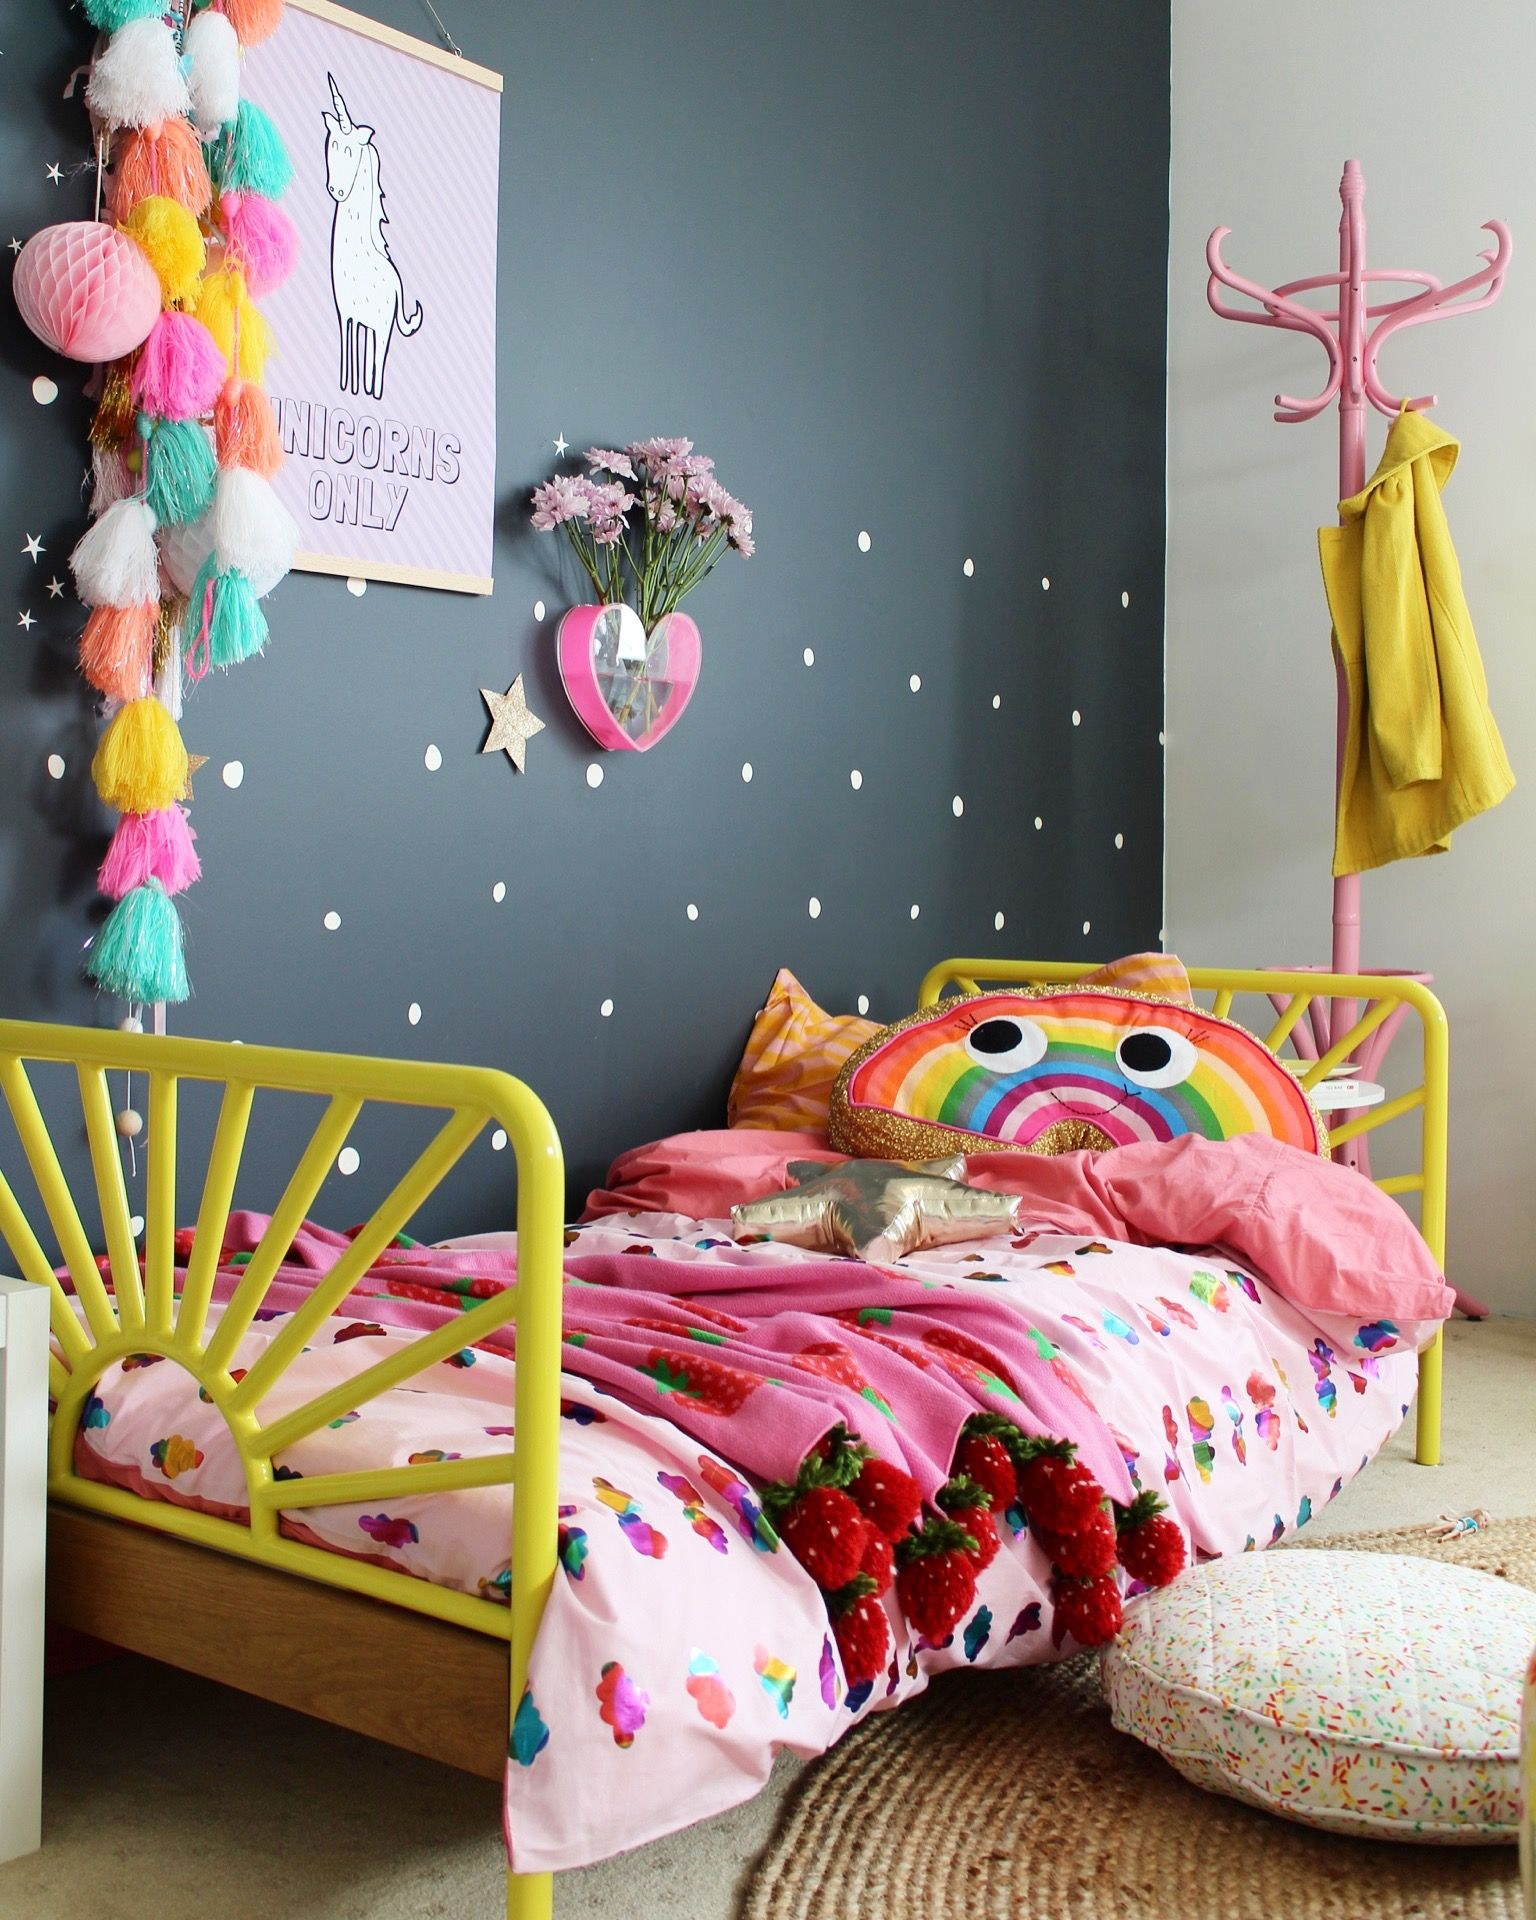 25 Amazing Girls Room Decor Ideas For Teenagers Interiors Children Pinterest Kids Bedroom